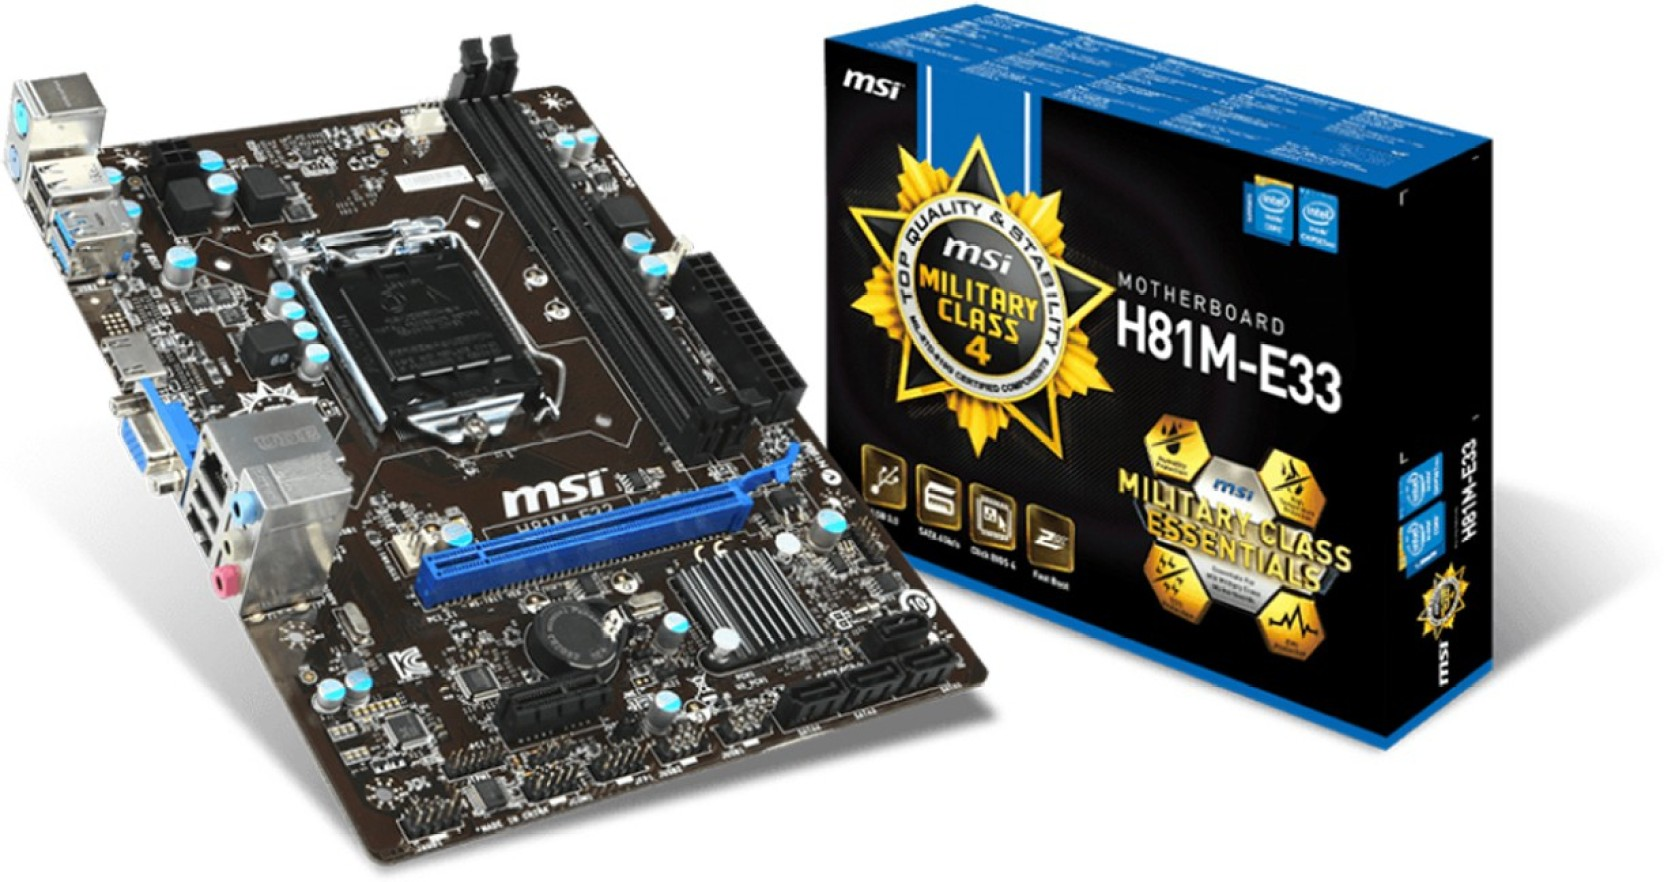 Msi H81m E33 Motherboard Processor Lga1150 G3240 310ghz Dual Core Add To Cart